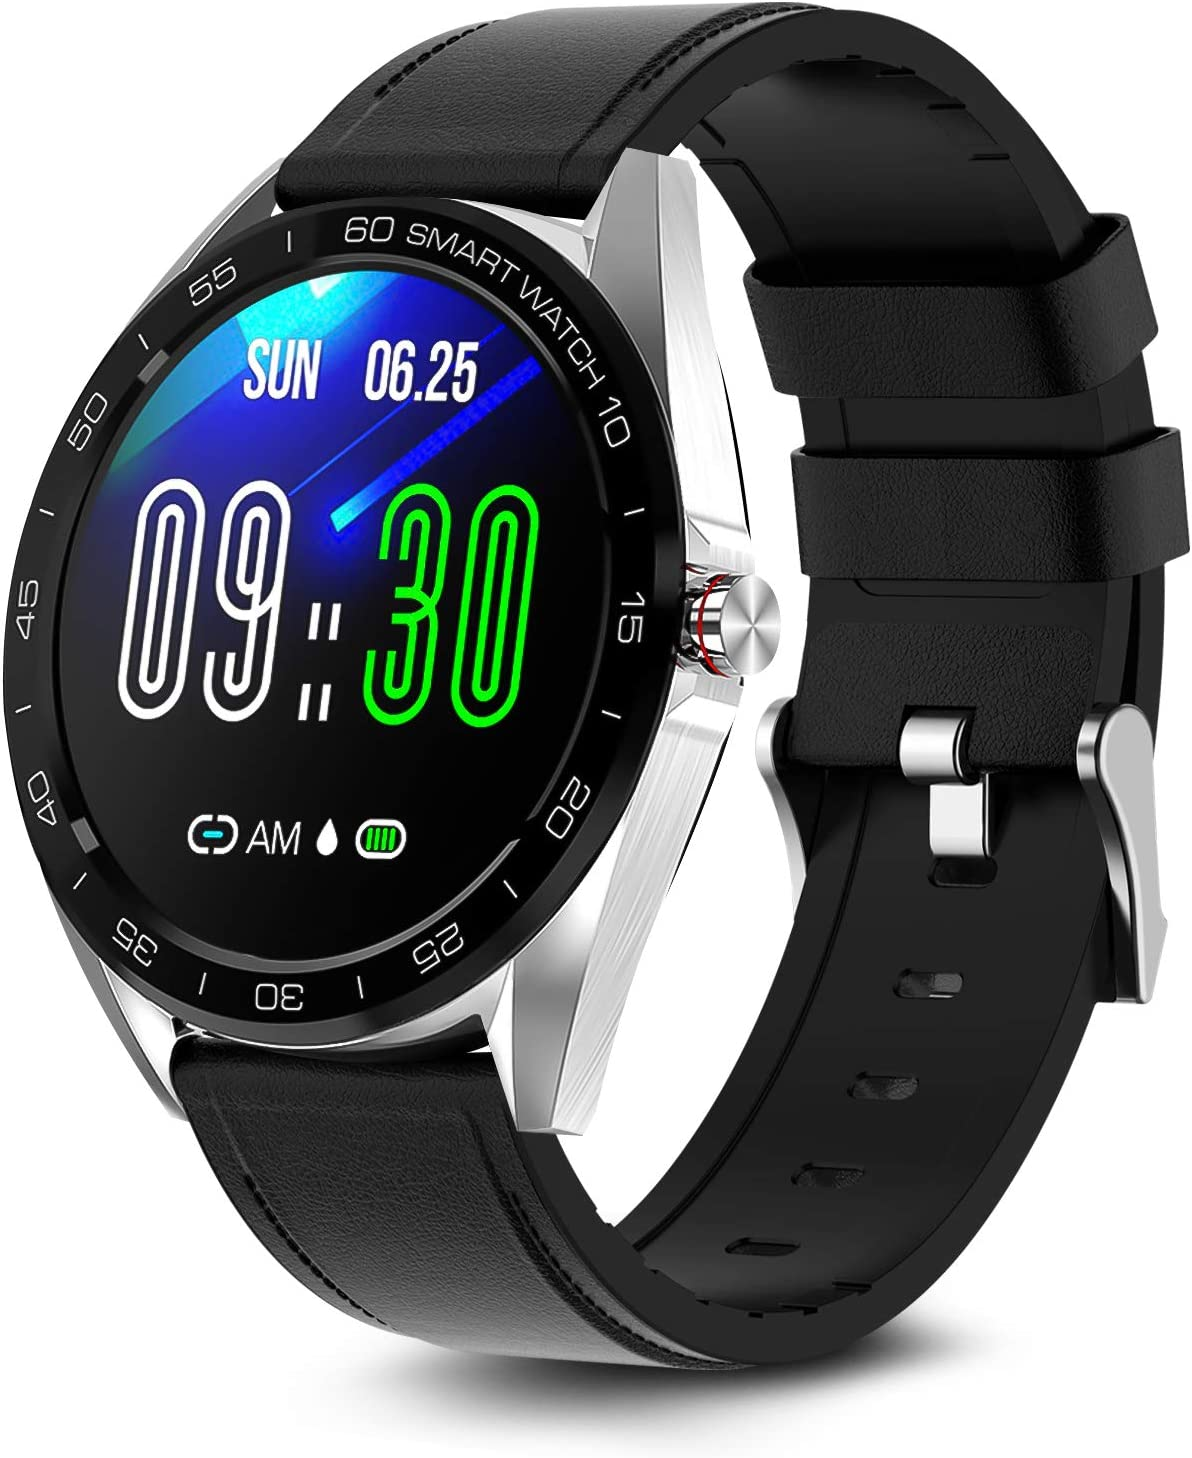 MAXTOP Smart Watch Compatible with iPhone and Android Phones,Smartwatch Fitness Tracker IP67 Swimming Waterproof with Heart Rate Blood Pressure Sleep Monitor Activity Tracker for Men Women Model K7